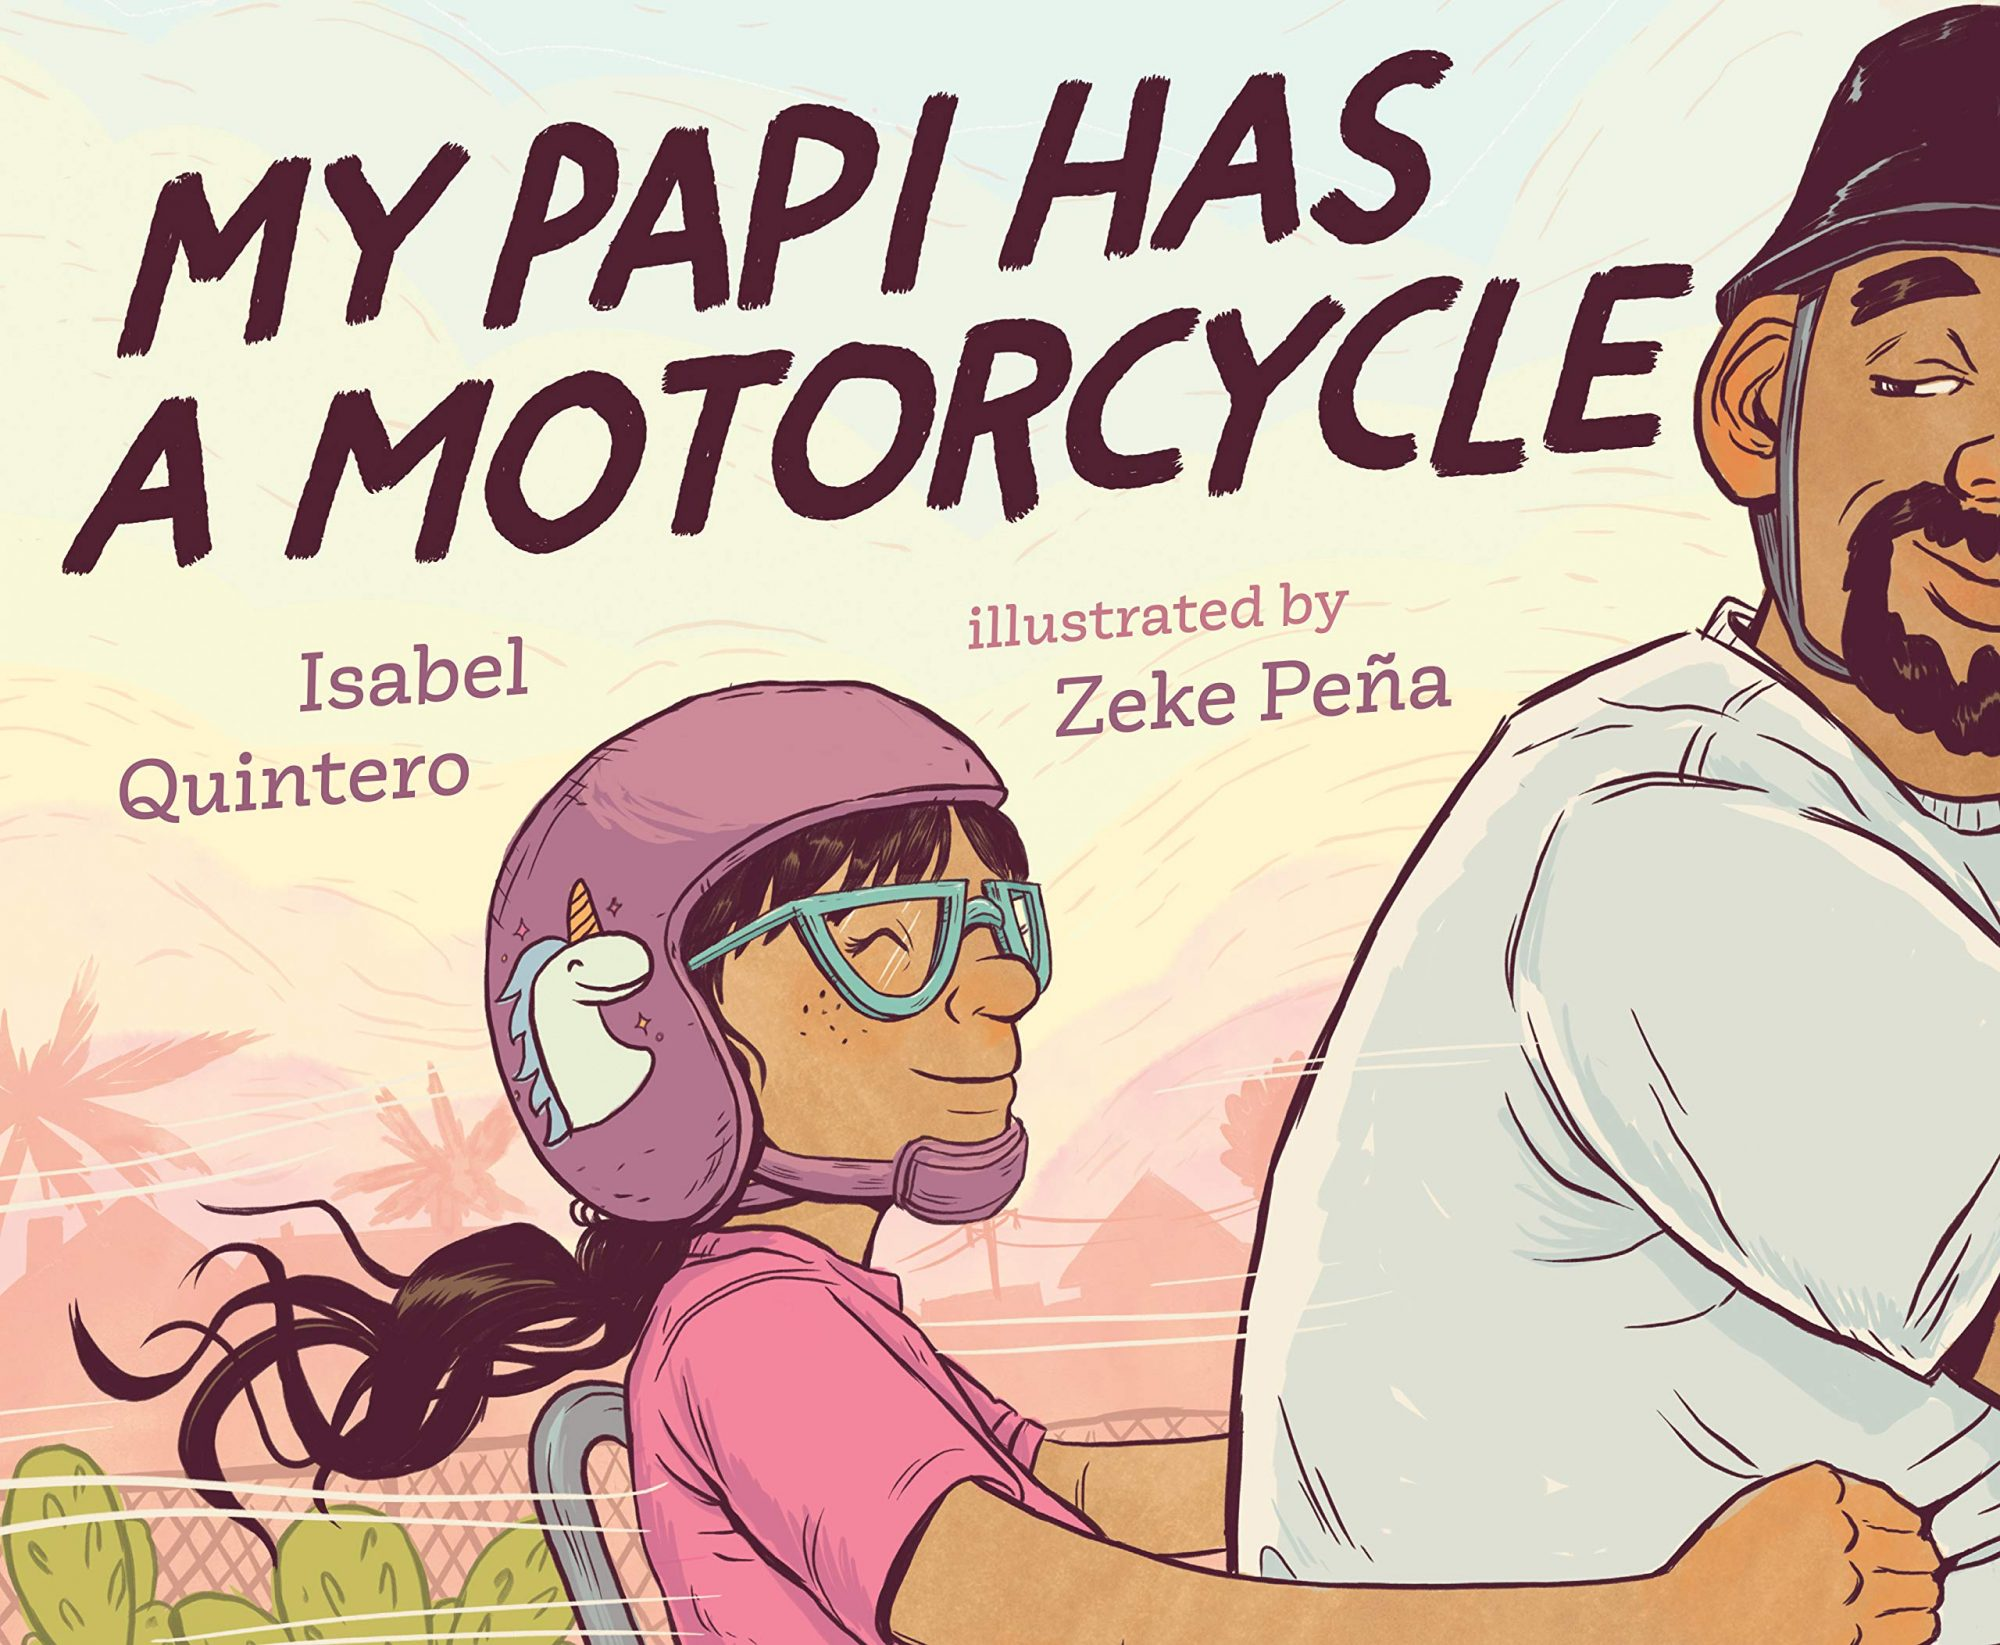 My Papi Has a Motorcycl